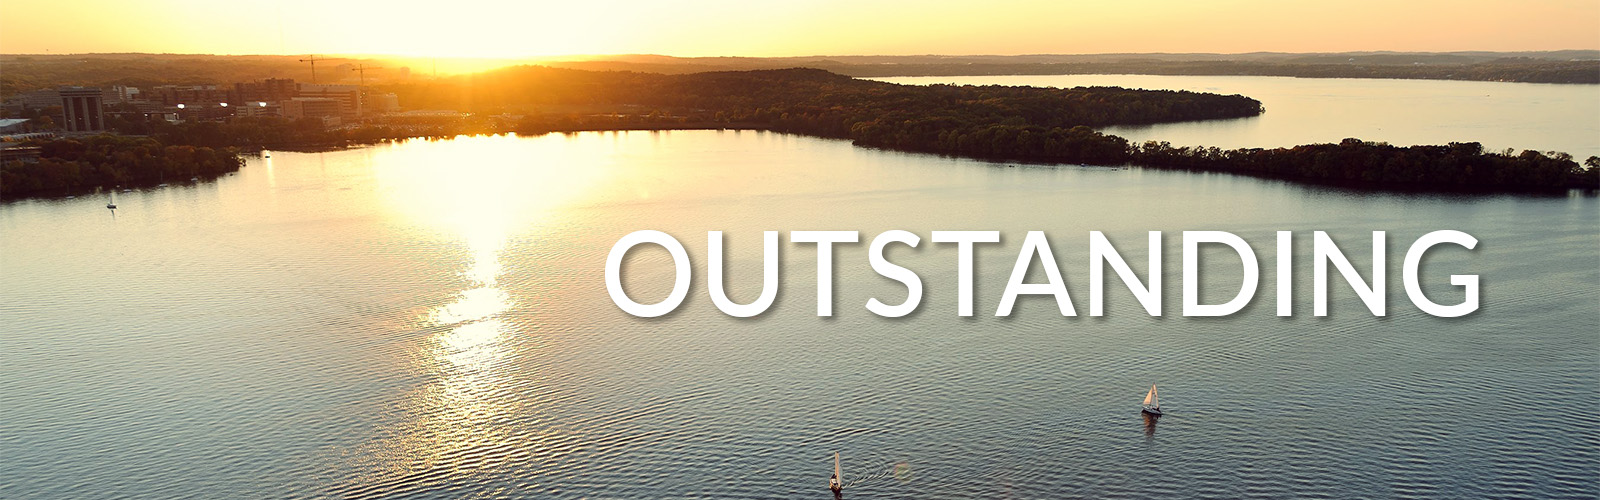 "The word ""Outstanding"" is overlayed on a photo of sailboats dot Lake Mendota in an aerial view of the University of Wisconsin-Madison campus shoreline during an autumn sunset. On the horizon at right is a silhouette of Picnic Point, to the left is the medical campus."